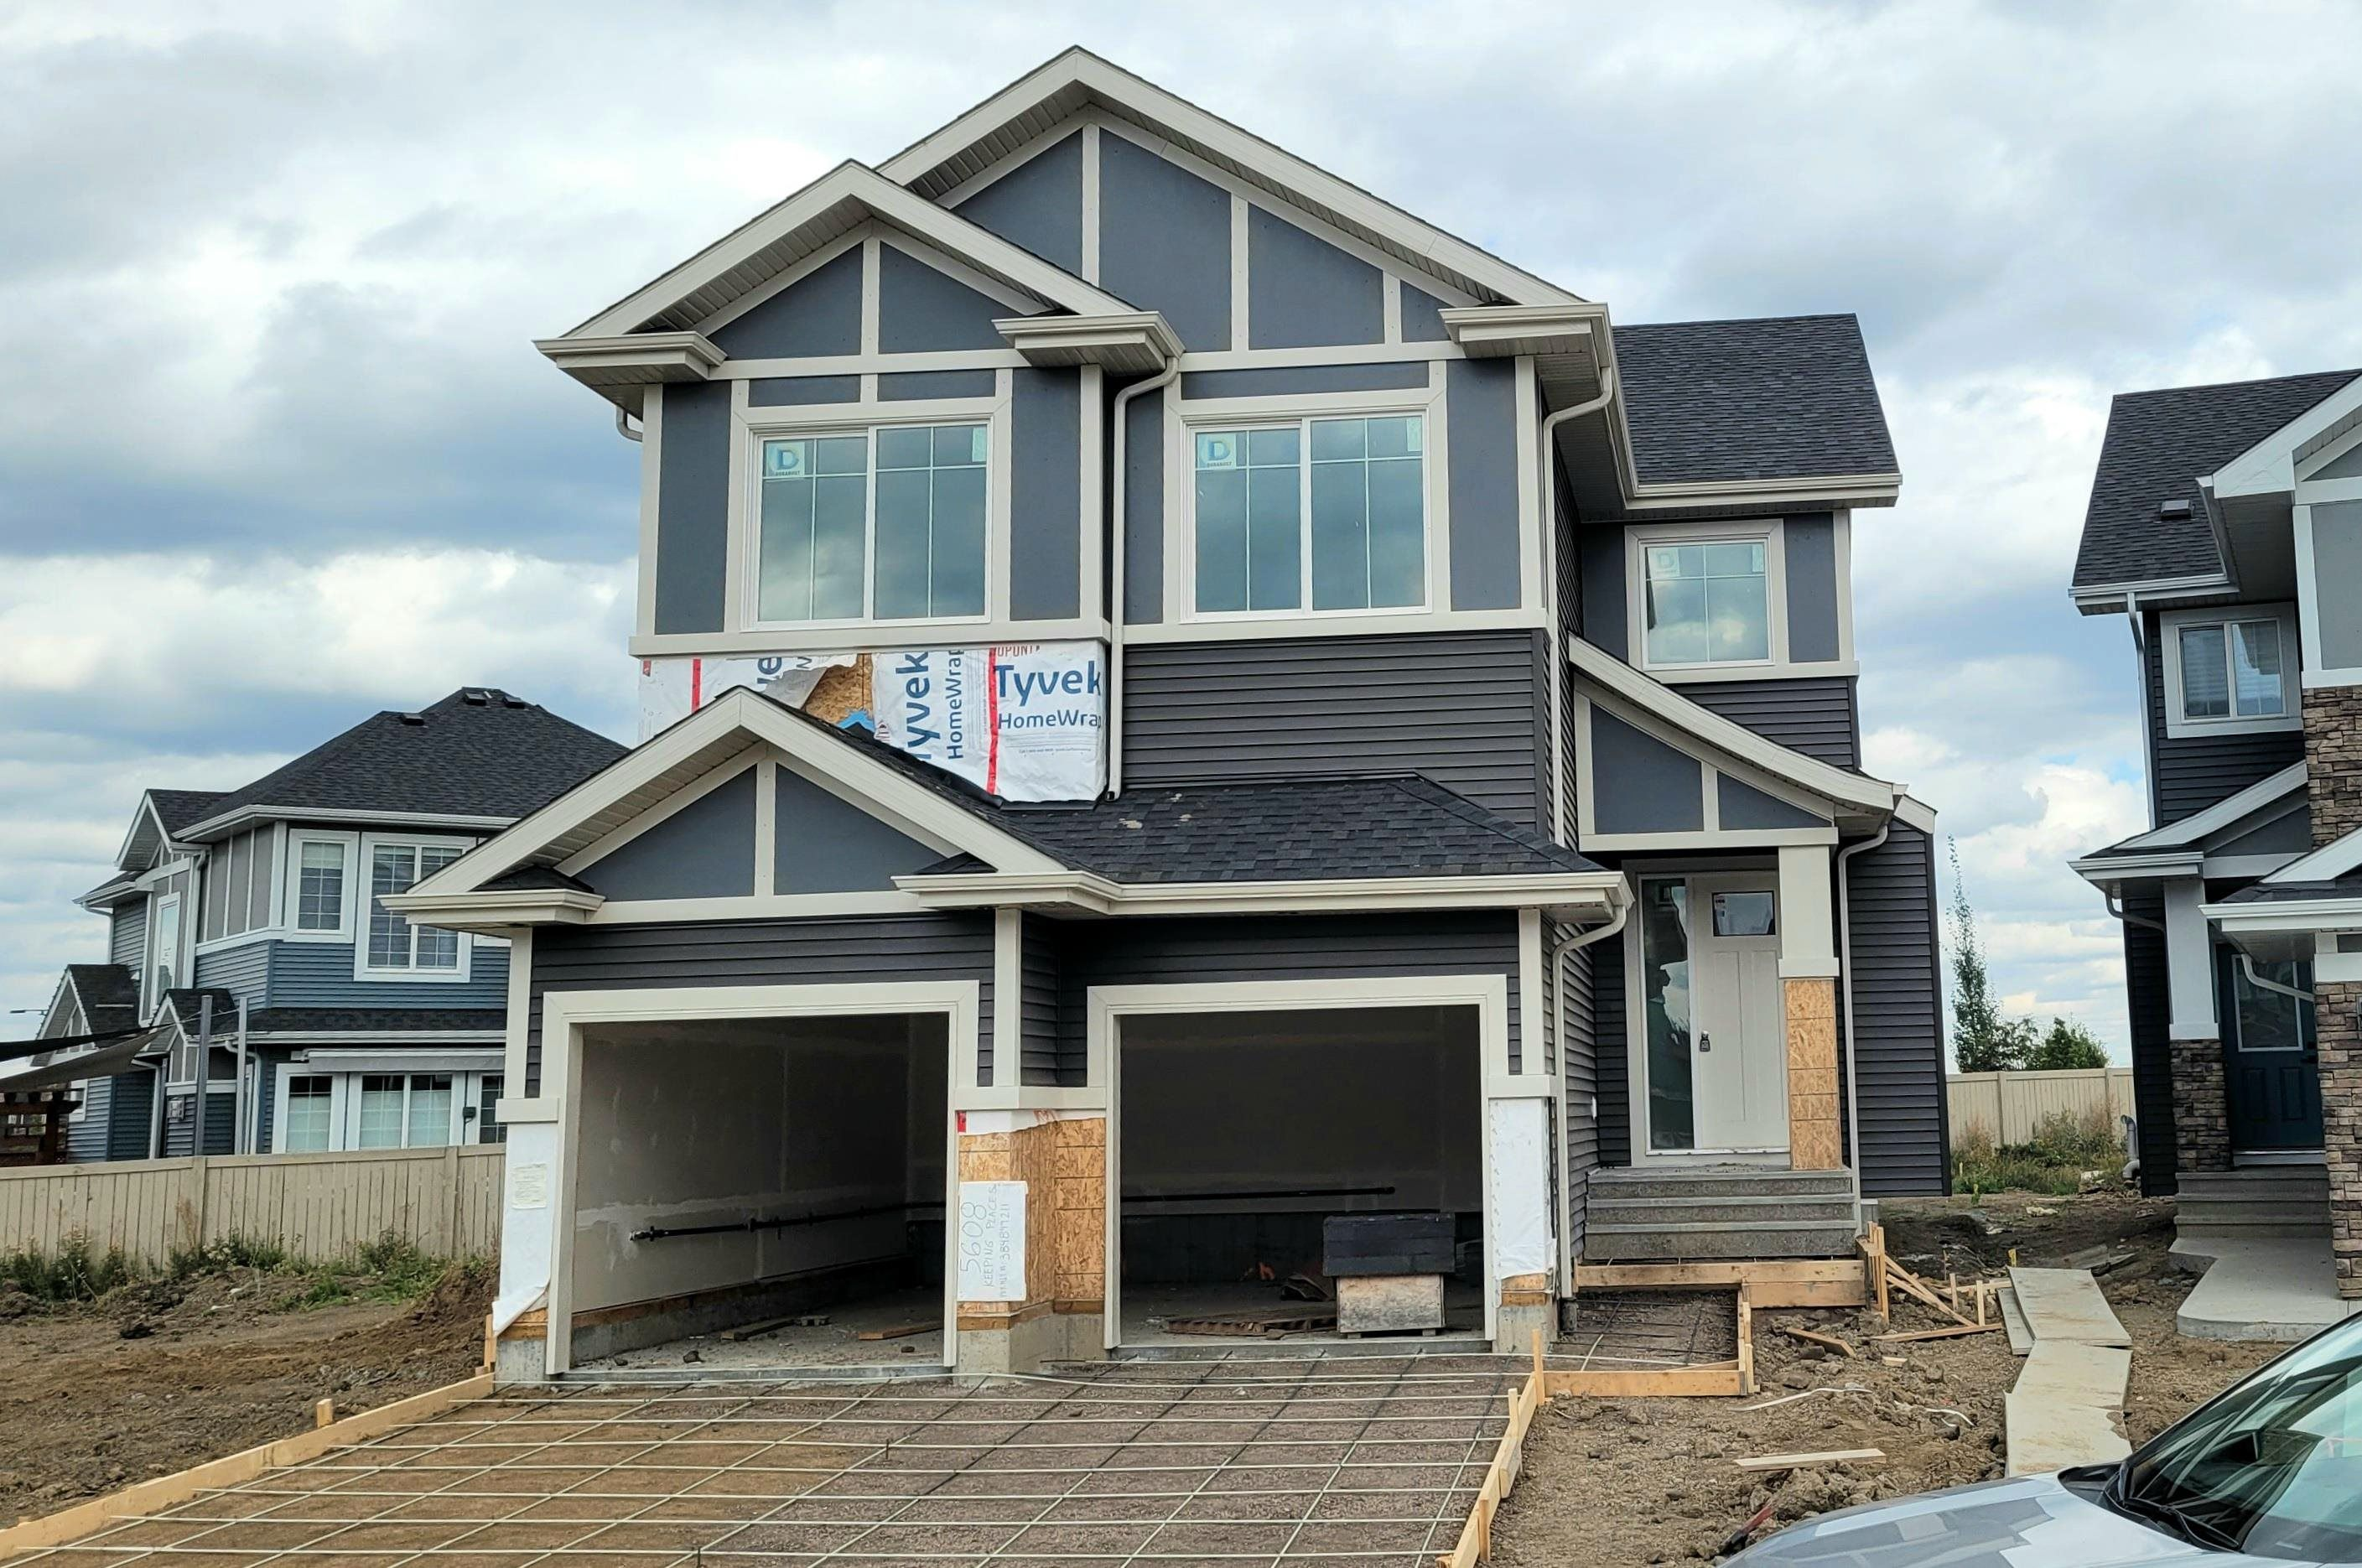 Main Photo: 5608 KEEPING Place in Edmonton: Zone 56 House for sale : MLS®# E4260130